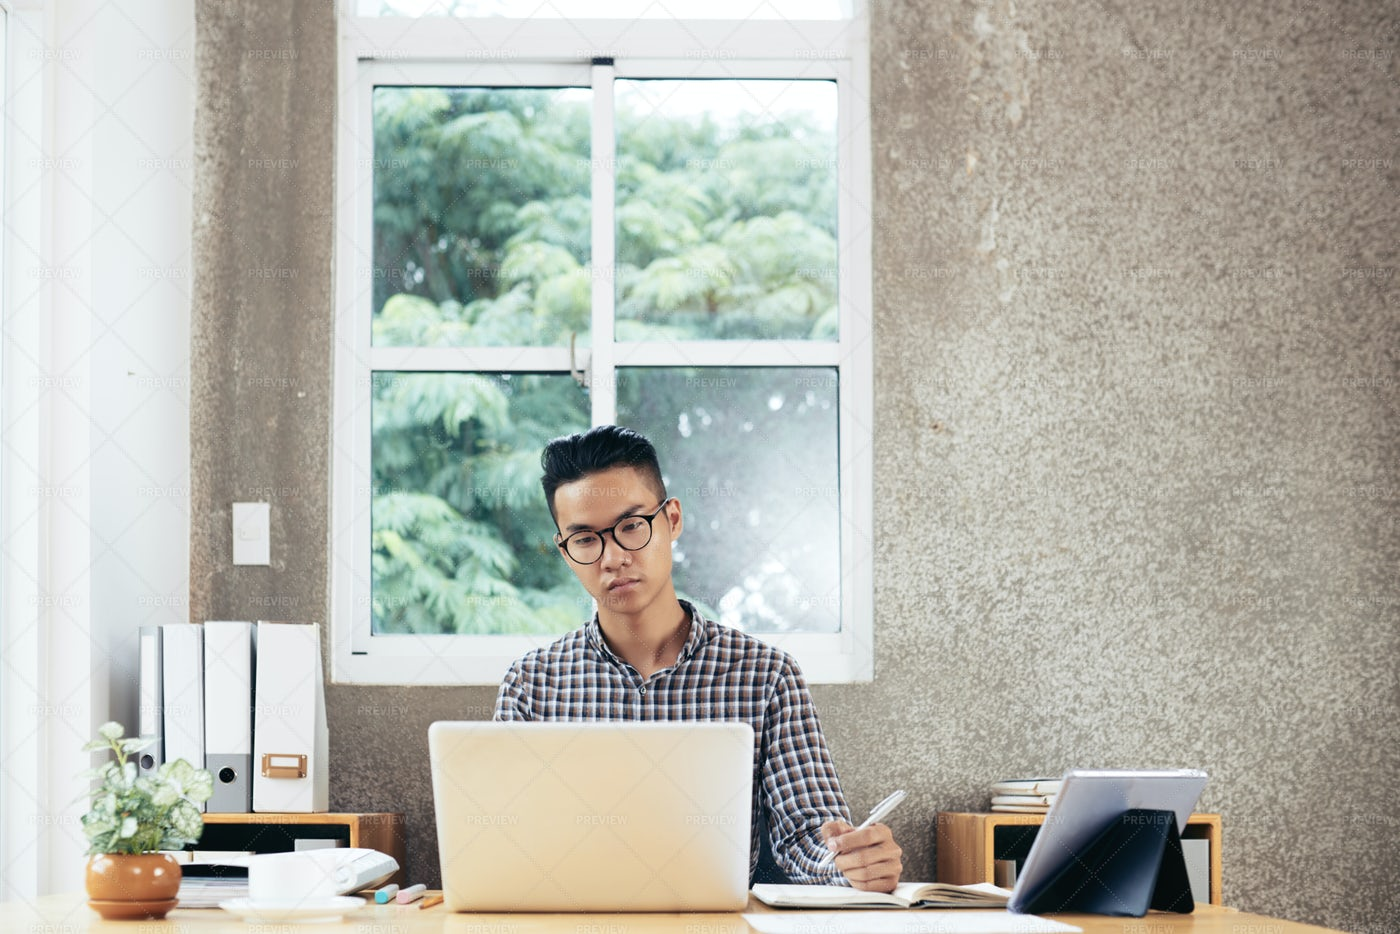 Manager Working In Office: Stock Photos